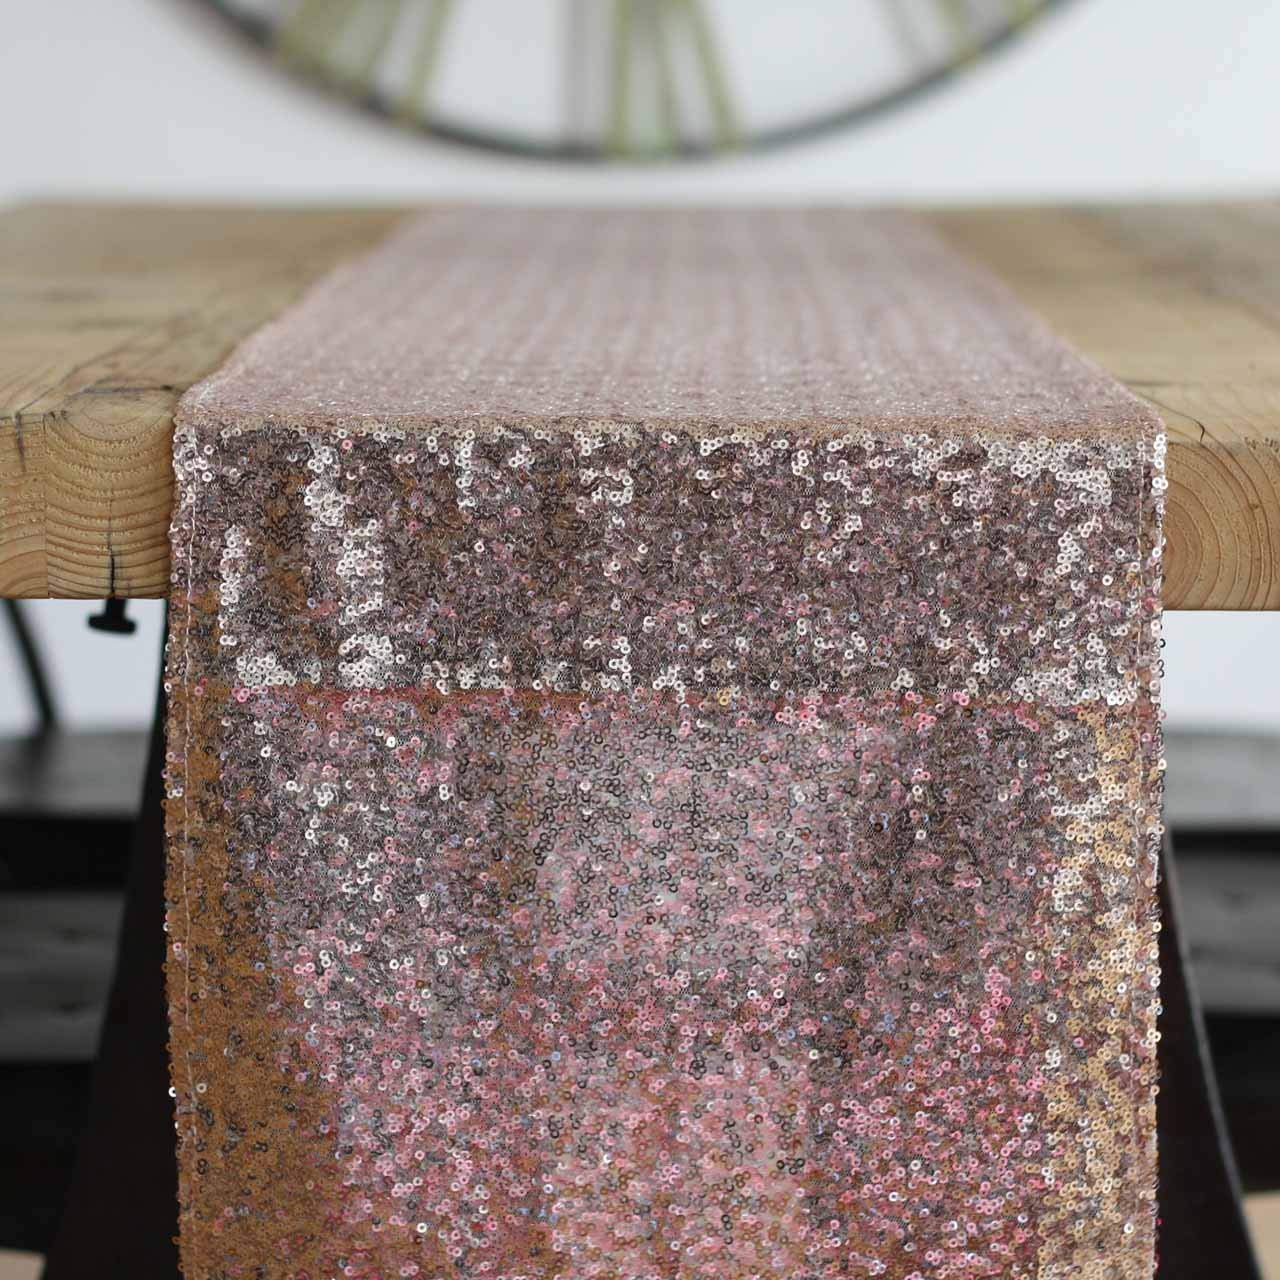 OWS Pack of 15 Pc Wedding 12 x 72 inch Sequin Table Runner for Wedding Banquet Decortable Sparkly Sequin Runner- Rose Gold